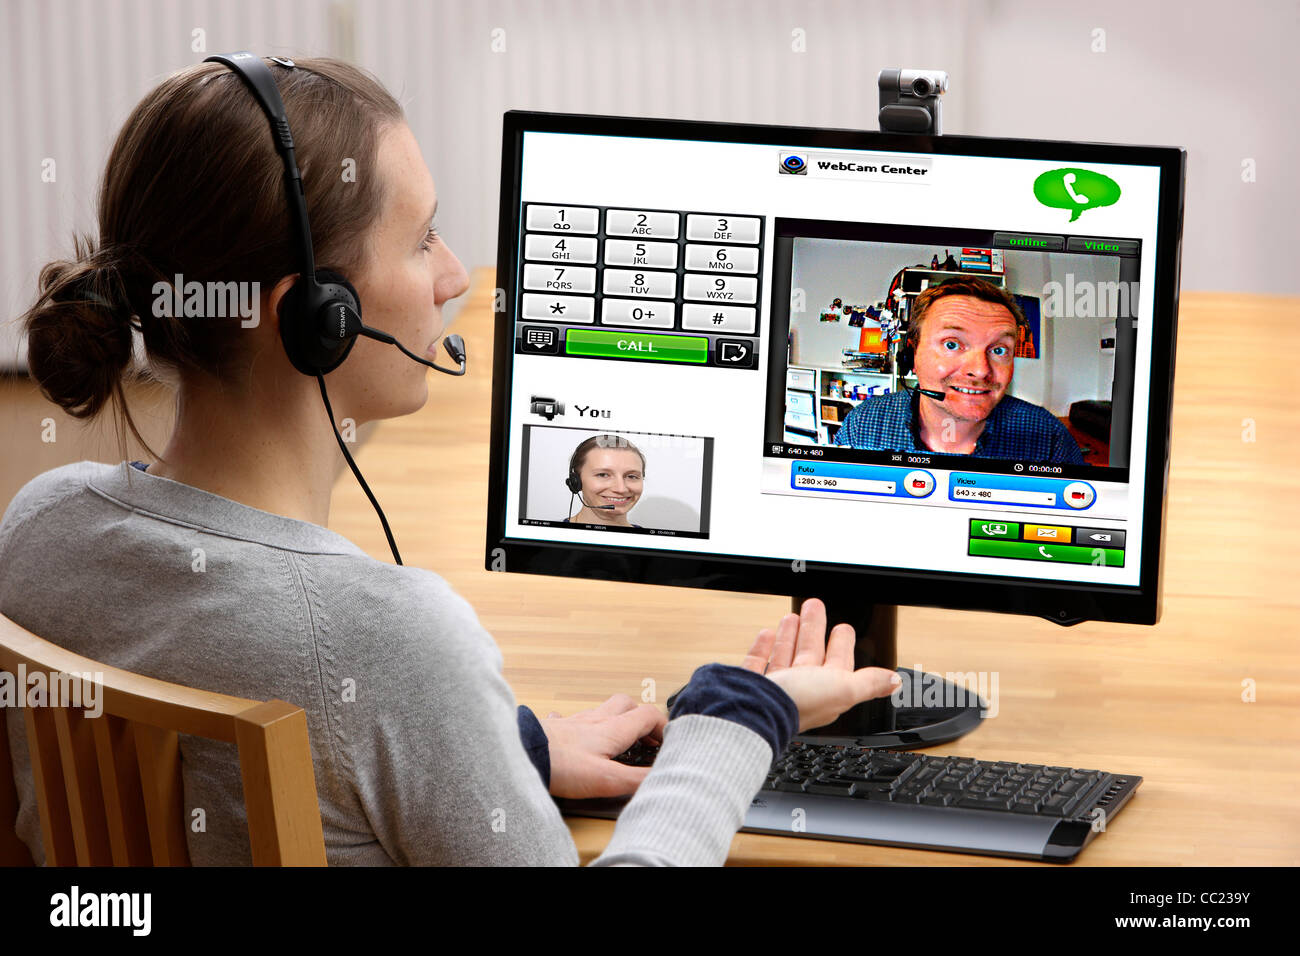 cam chat rooms